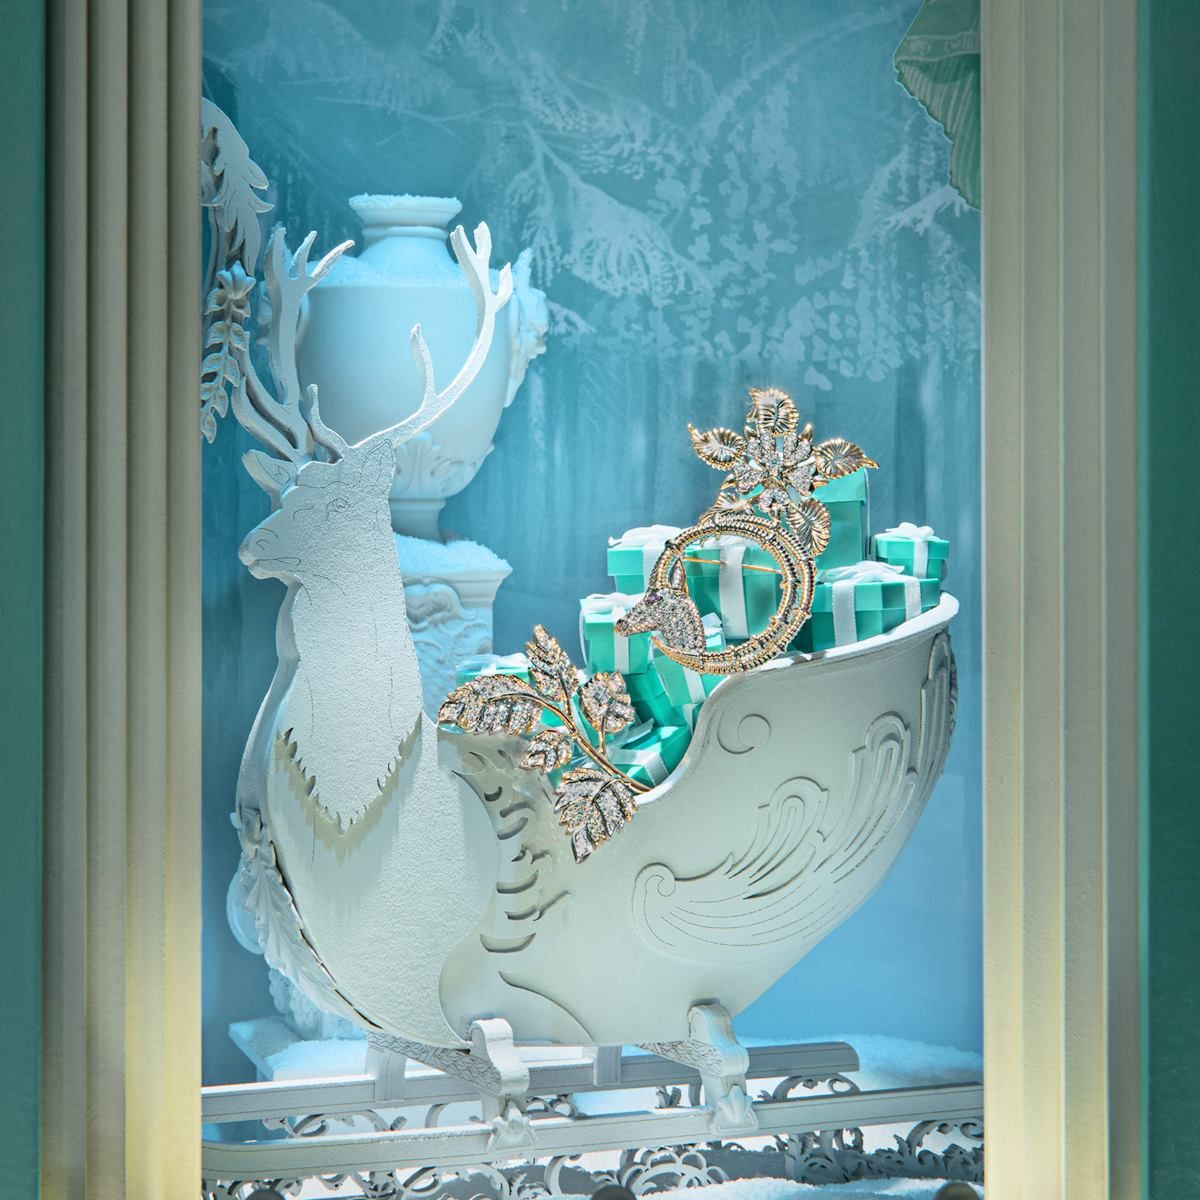 Santa is coming to town and he's bringing presents! Holiday window display at Tiffany & Co, recreating the Christmas spirit in this jewelry display.